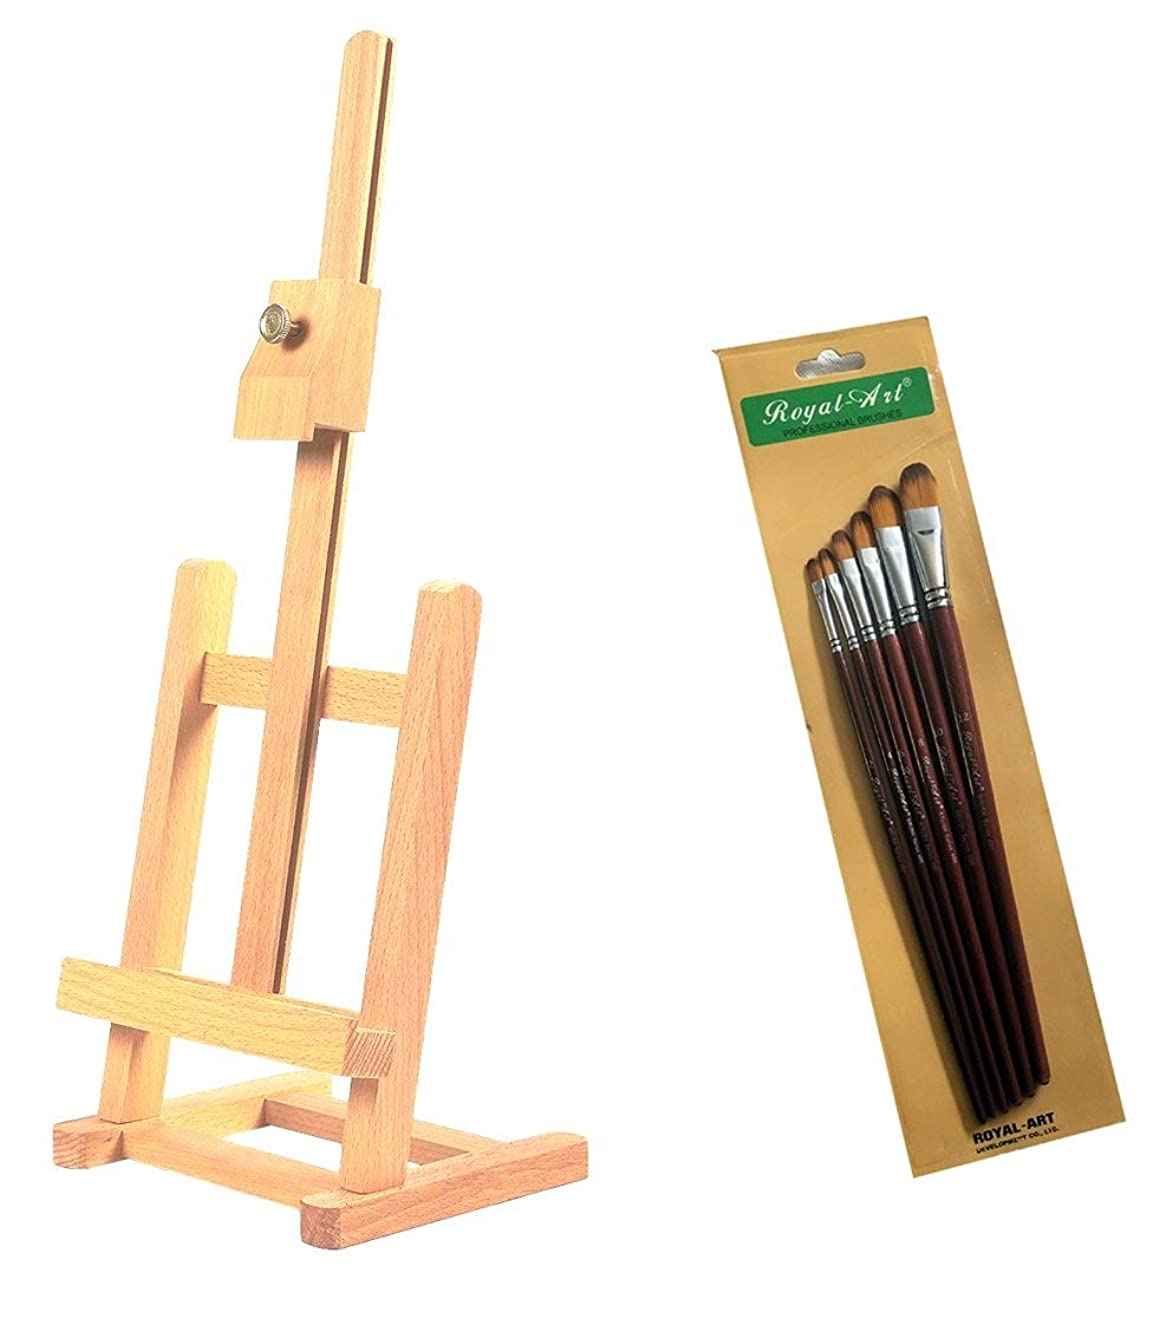 AmDiv Mini Wood Studio Adjustable Table Top Artist Easel - Holds up to 12 Inch Canvas or Frame (Easel + 6 PC Brush Set)